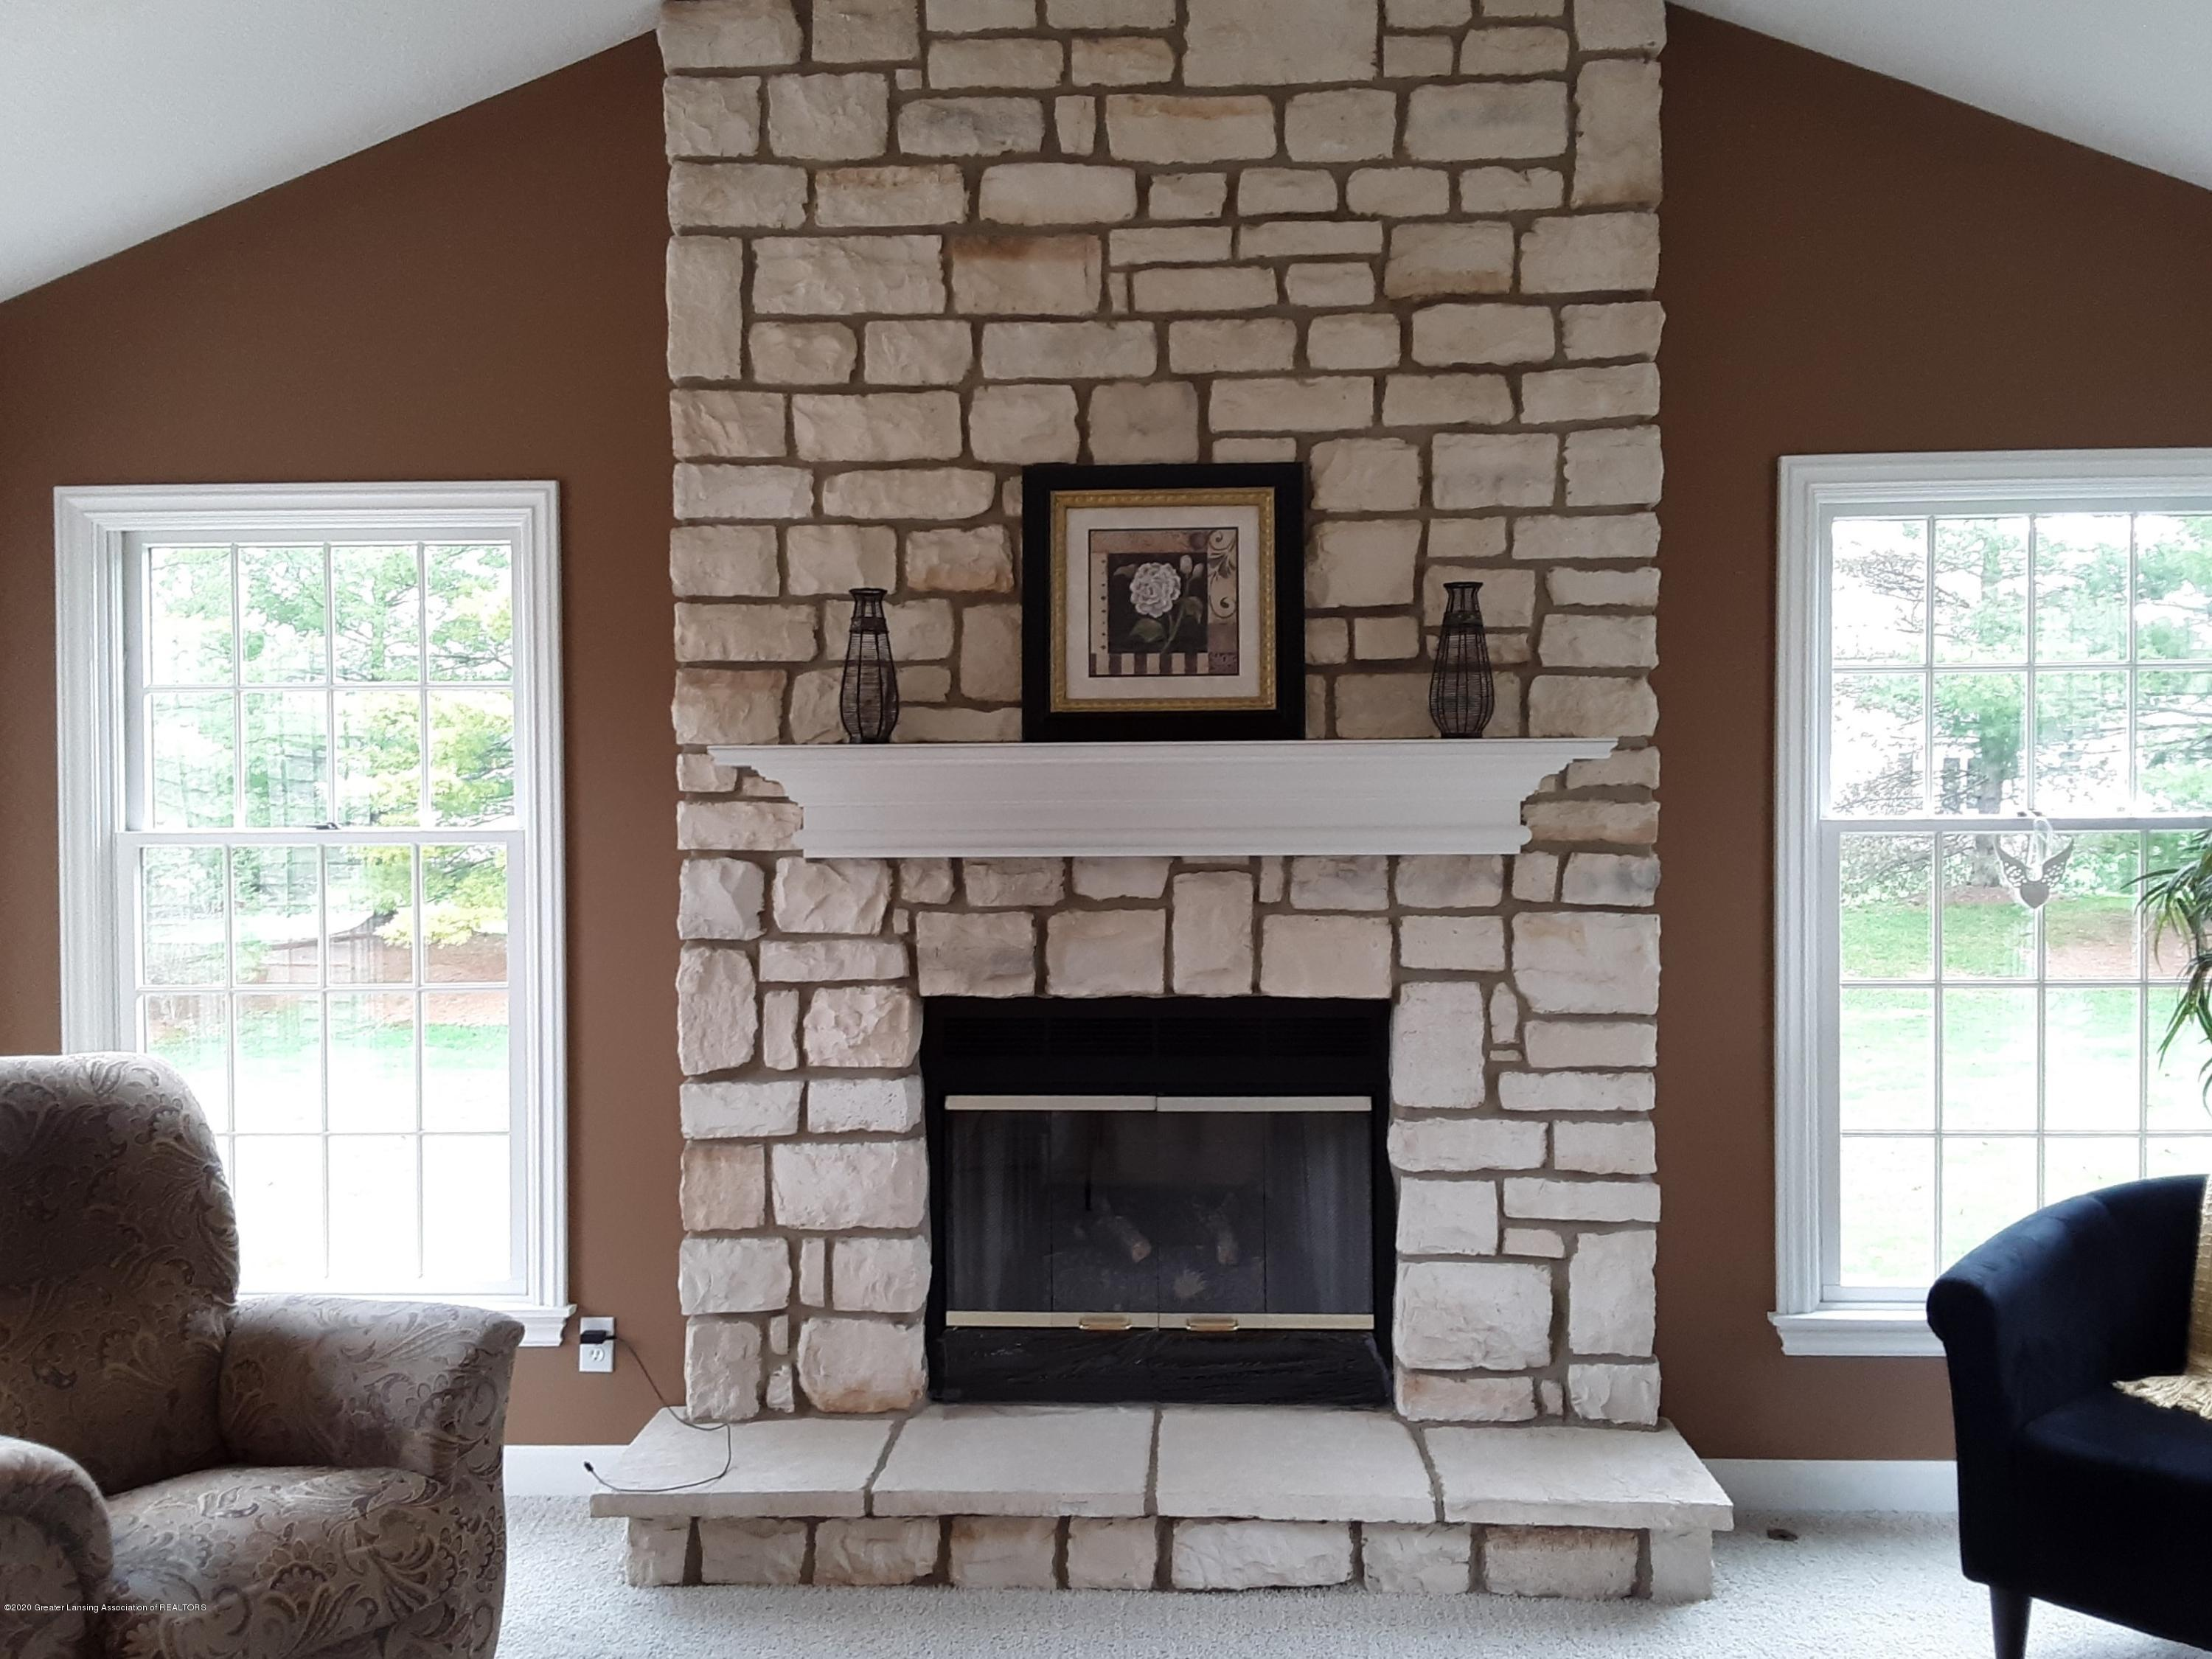 13142 Blaisdell Dr - 12. Great Room Fireplace - 13